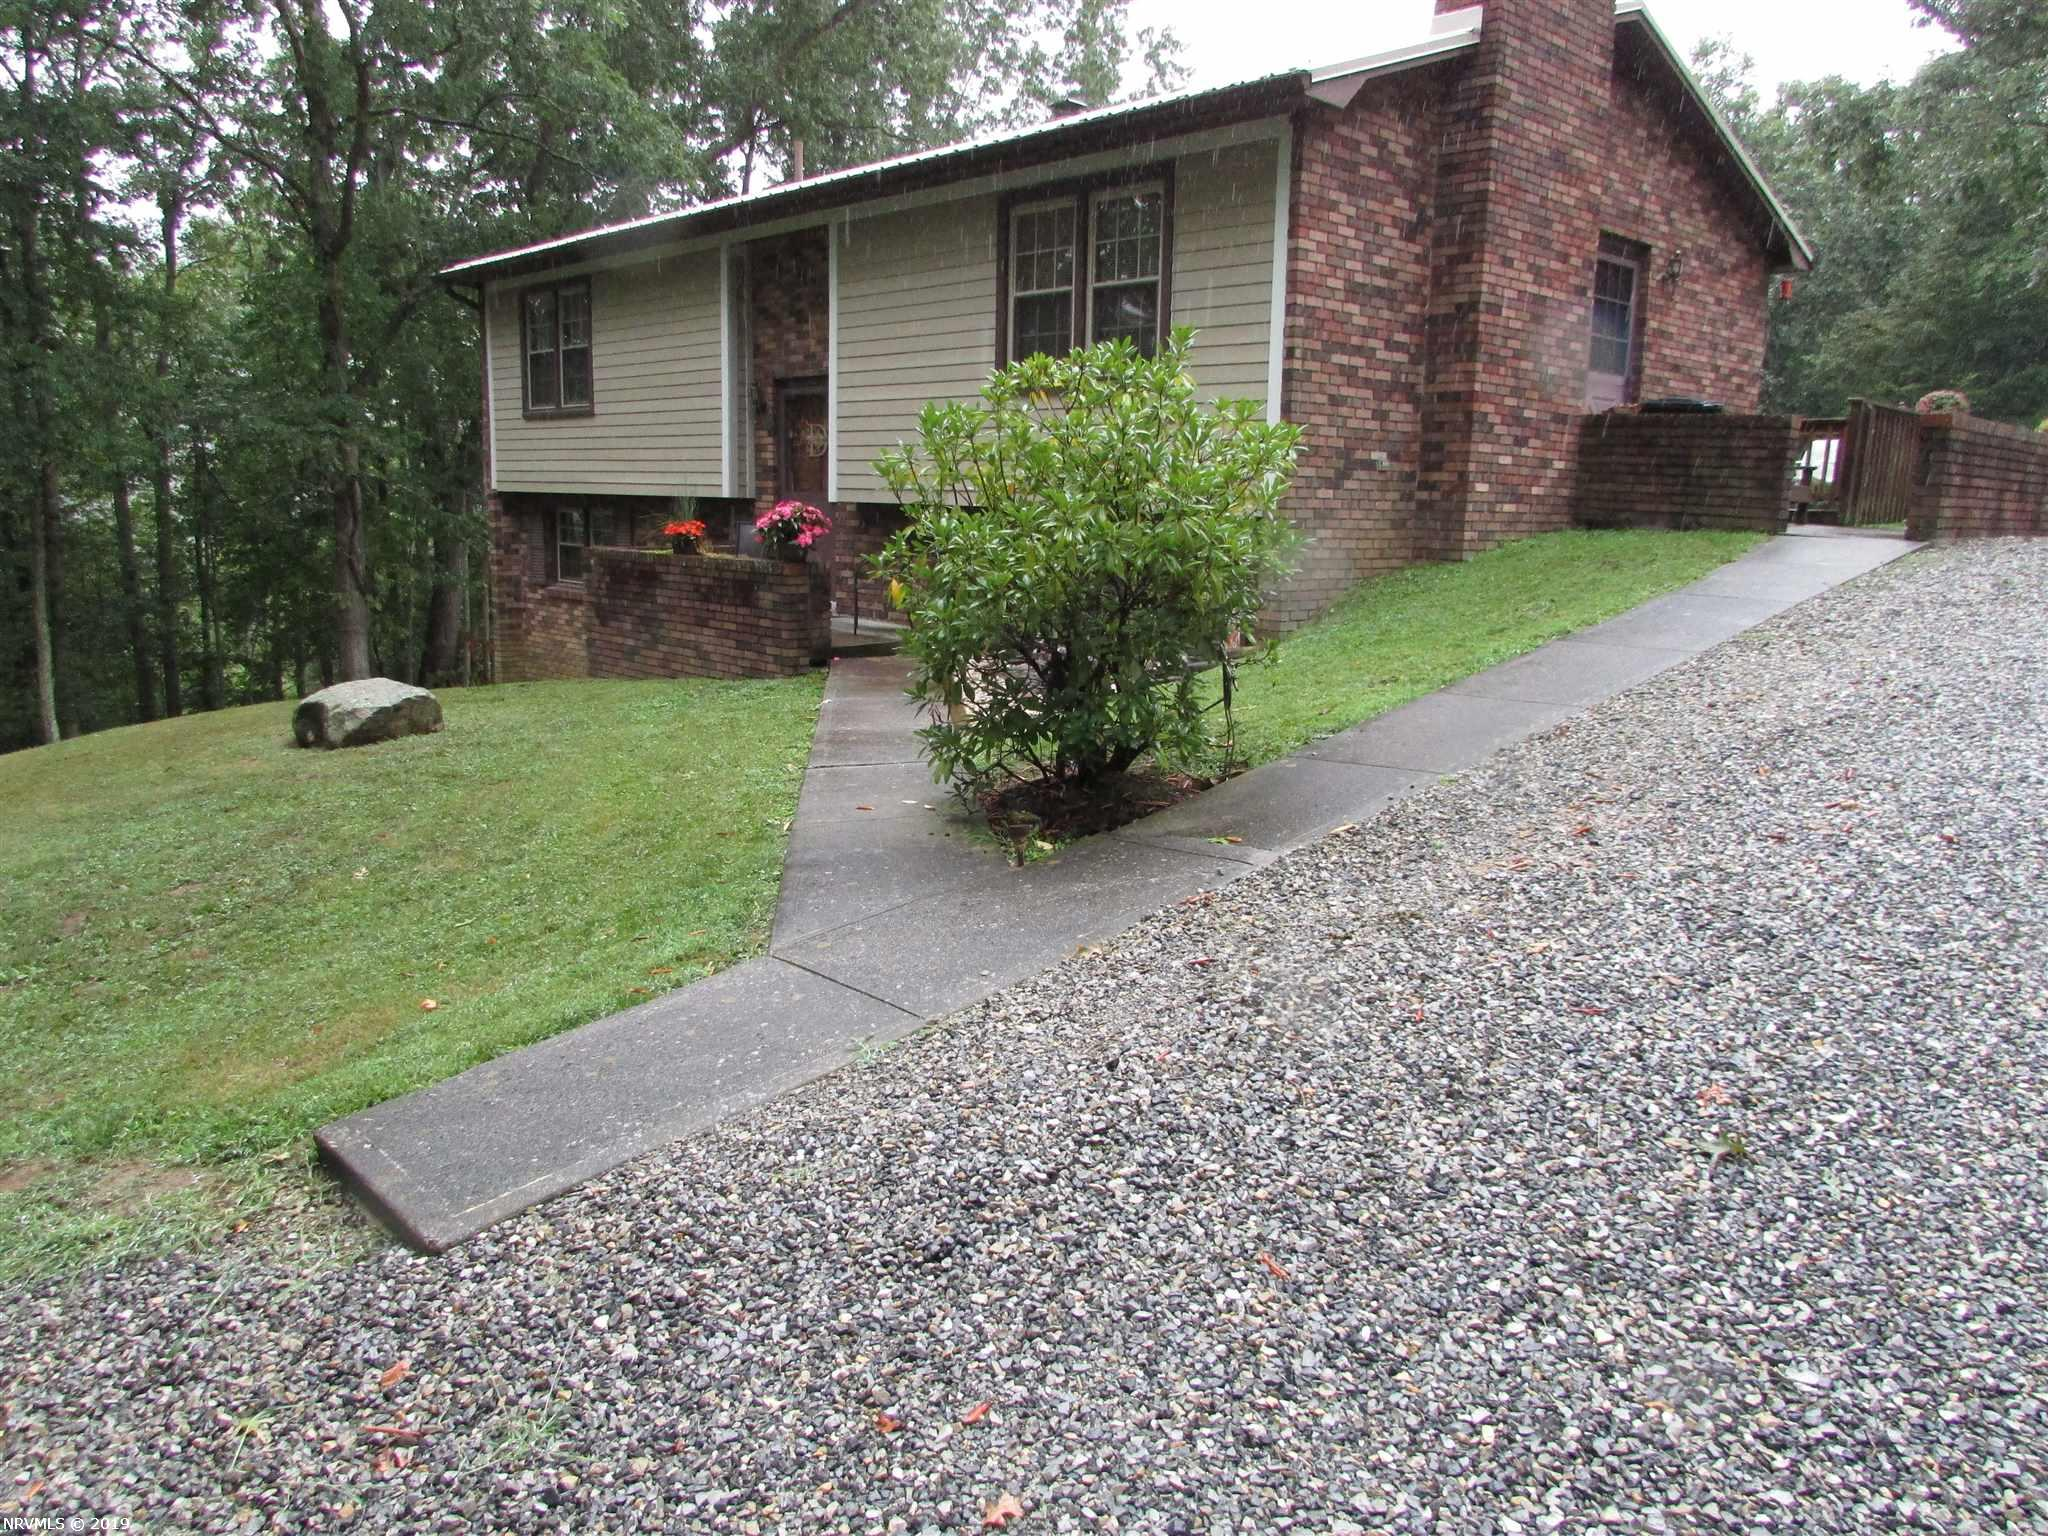 HUNTERS PARADISE; 114 +or - acres of wooded mountain land. 4 WHEELER TRAIL TO TOP OF THE MT. BEAR,DEER TURKEY AND SMALL GAME PLENTIFUL. LARGE TREE STAND IN PLACE AND READY FOR HUNTING SEASON. Plus a beautiful 3/4 bedroom split foyer.  Kitchen with laminate flooring, stove, refrigerator(new), microwave, eat in kitchen, dining room off kitchen, 12x13  living room with fireplace /wood burning stove, full bath with shower/tub, two bedrooms on upper level with carpet and paneling. Lower level has a bedroom with tile floors, paneling, bath with tile floor, shower only no tub, office or bedroom tile floors, large 22x15 den with fireplace with wood stove installed.  Utility room with washer/dryer, furnace area and stove or workshop. 24 x 40 Garage/workshop, pull down stairs to floored attic for extra storage. heated by a oil/wood stove,. 14 x16 storage building out back of the garage.  VERY PRIVATE LOCATION ONLY 1.2 MILES FROM RT.100.